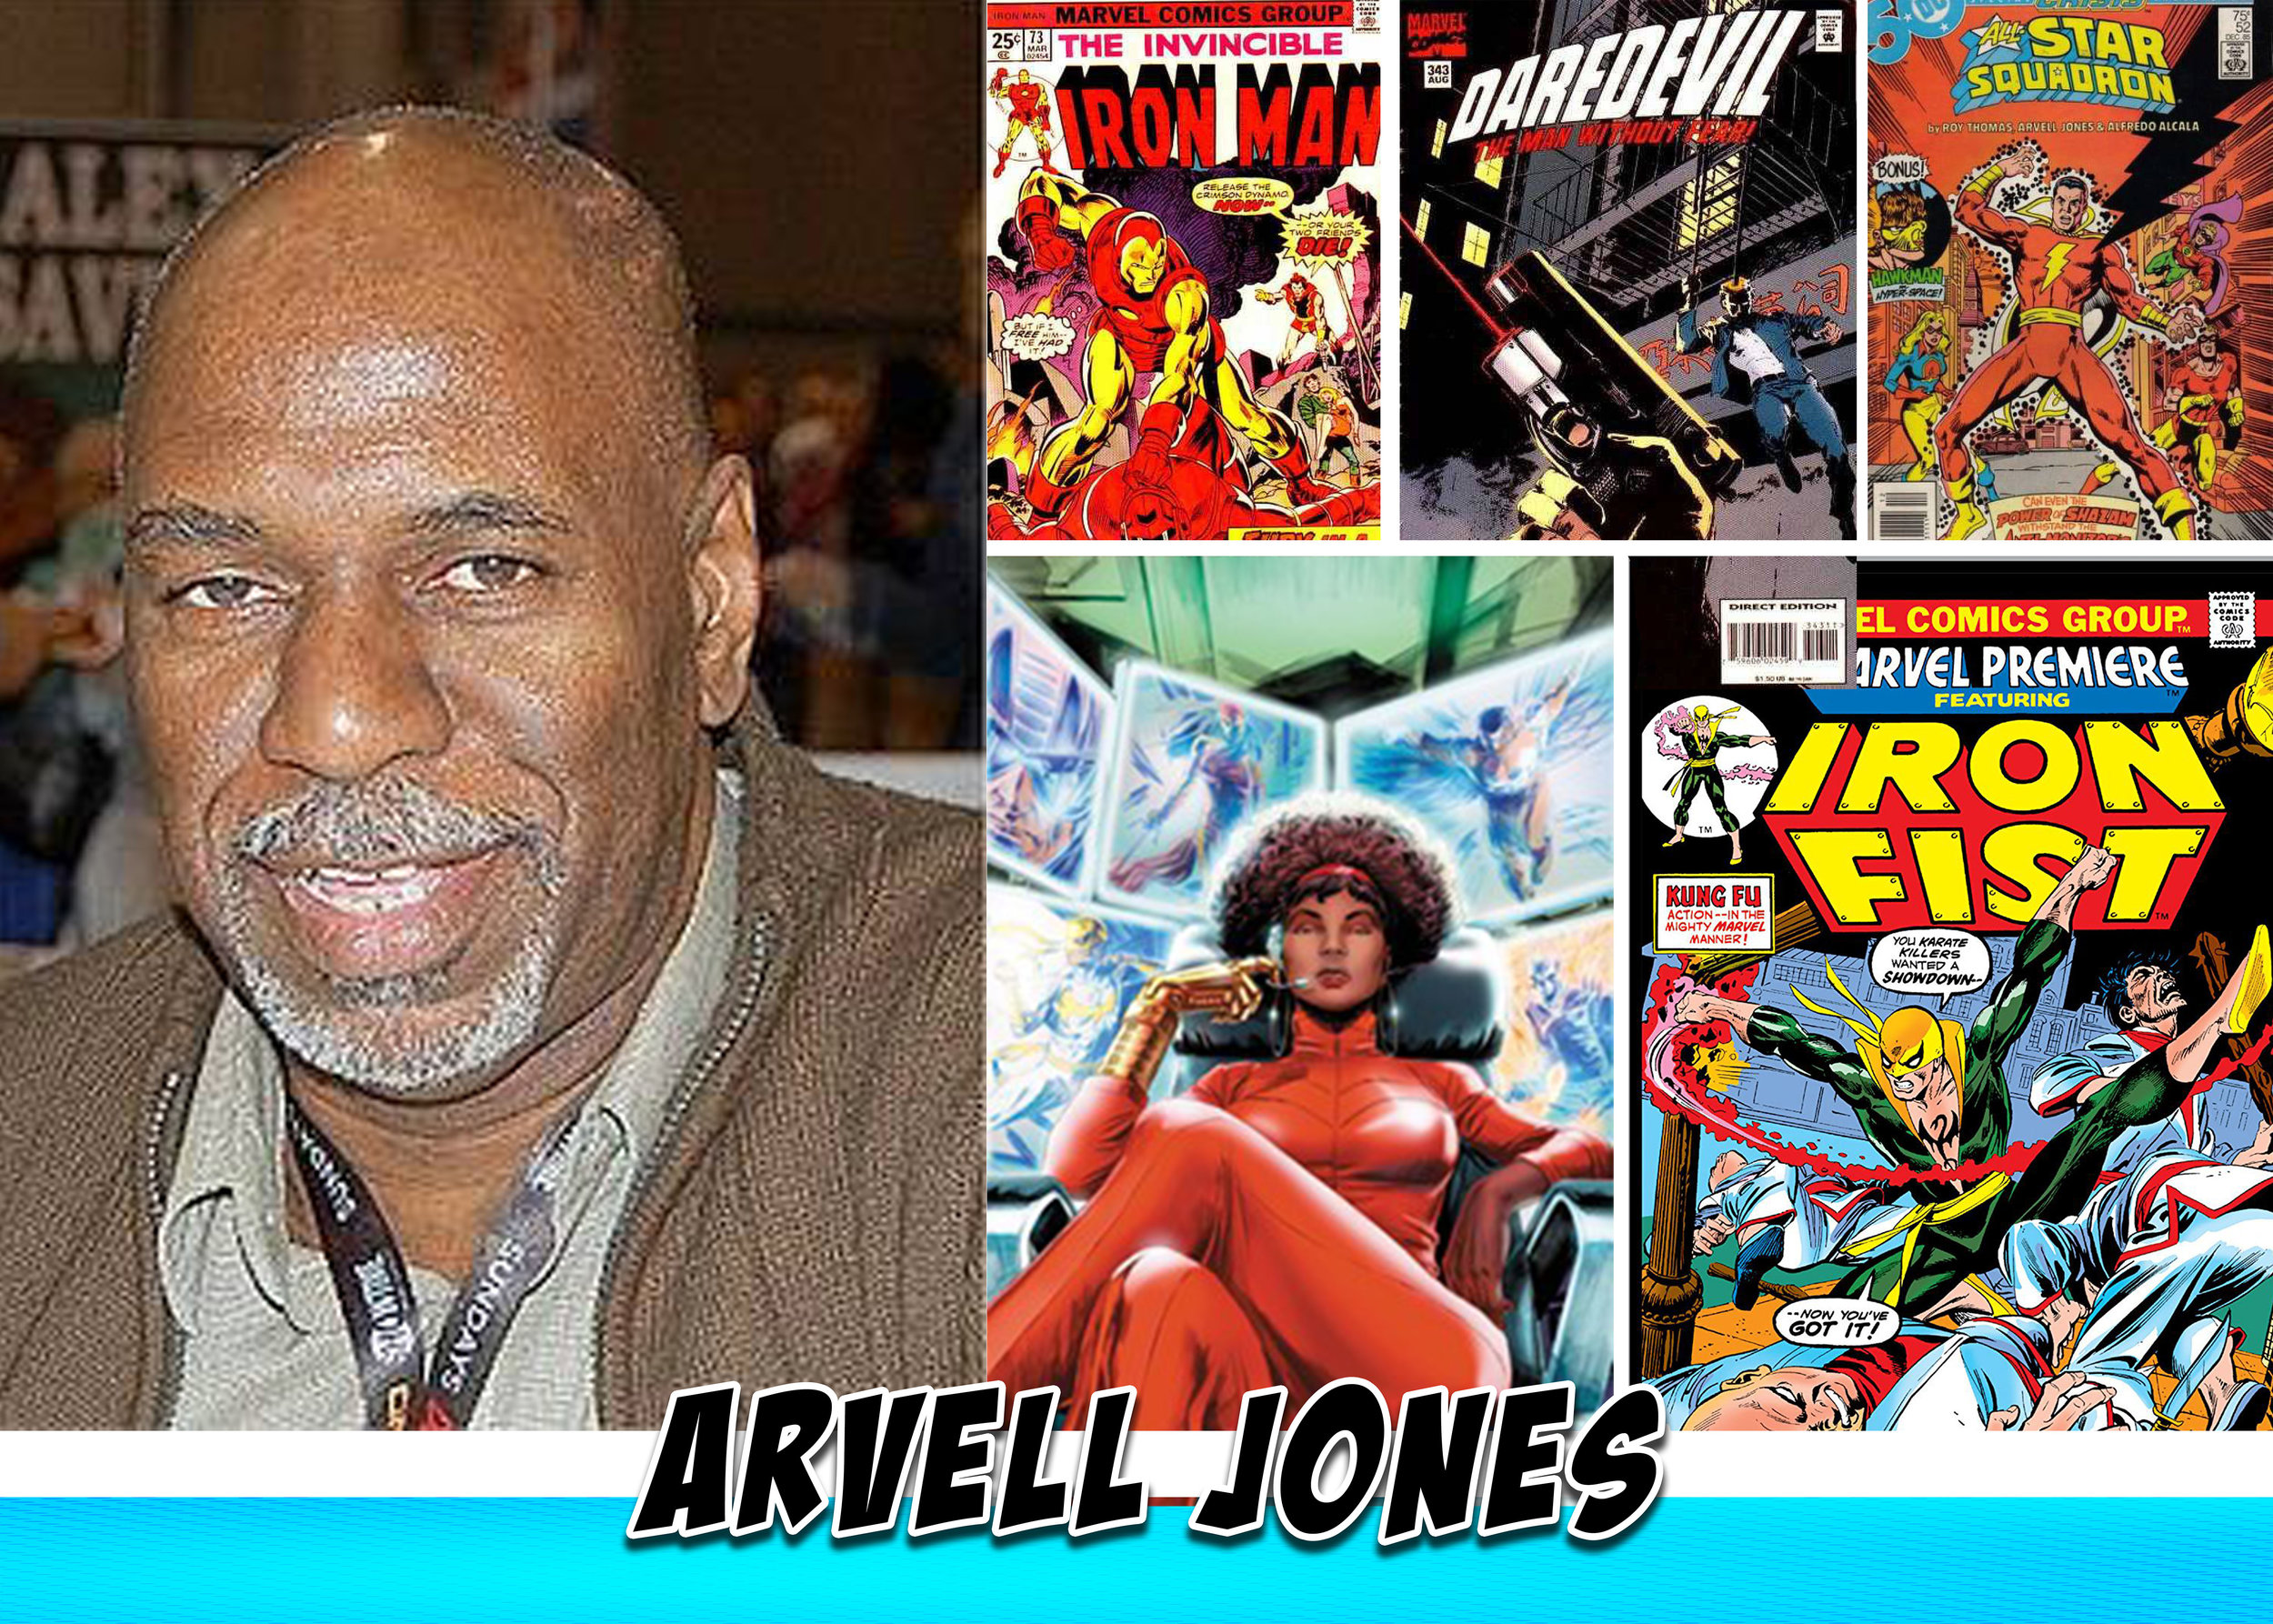 Arvell Jones - Arvell Malcolm Jones has been drawing comics for a long time, his earliest work appears in Marvel Comics' Marvel Premiere #20-22 (Jan.-May 1975), drawing the martial arts superhero Iron Fist he also co-created the character MISTY KNIGHT, along with Tony Isabella for the Iron Fist series. He's drawn for Marvel such titles as, Deathlok, Thor, Iron Man, Luke Cage, Avengers, Daredevil, Captain America, Daredevil and more. Jones began worked for DC Comics on a short 10 page stories for DC Specials and Giant Books of Legion of Super Heroes before getting his own series Super-Team Family 1976-77 which the majority of issues were reprinted as the Countdown Special in mid 2000's, he also worked on All-Star Squadron in the mid-1980s, penciling the majority of the issues released between 1985 - 1987 starting with issue #37 while working at a local Detroit TV Station designing news graphics, animation and promotions. He returned to comics to Draw fill-in issues of Blood Syndicate, Hardware, before co-creating and drawing the first 6 issues of Kobalt for Milestone Media Inc